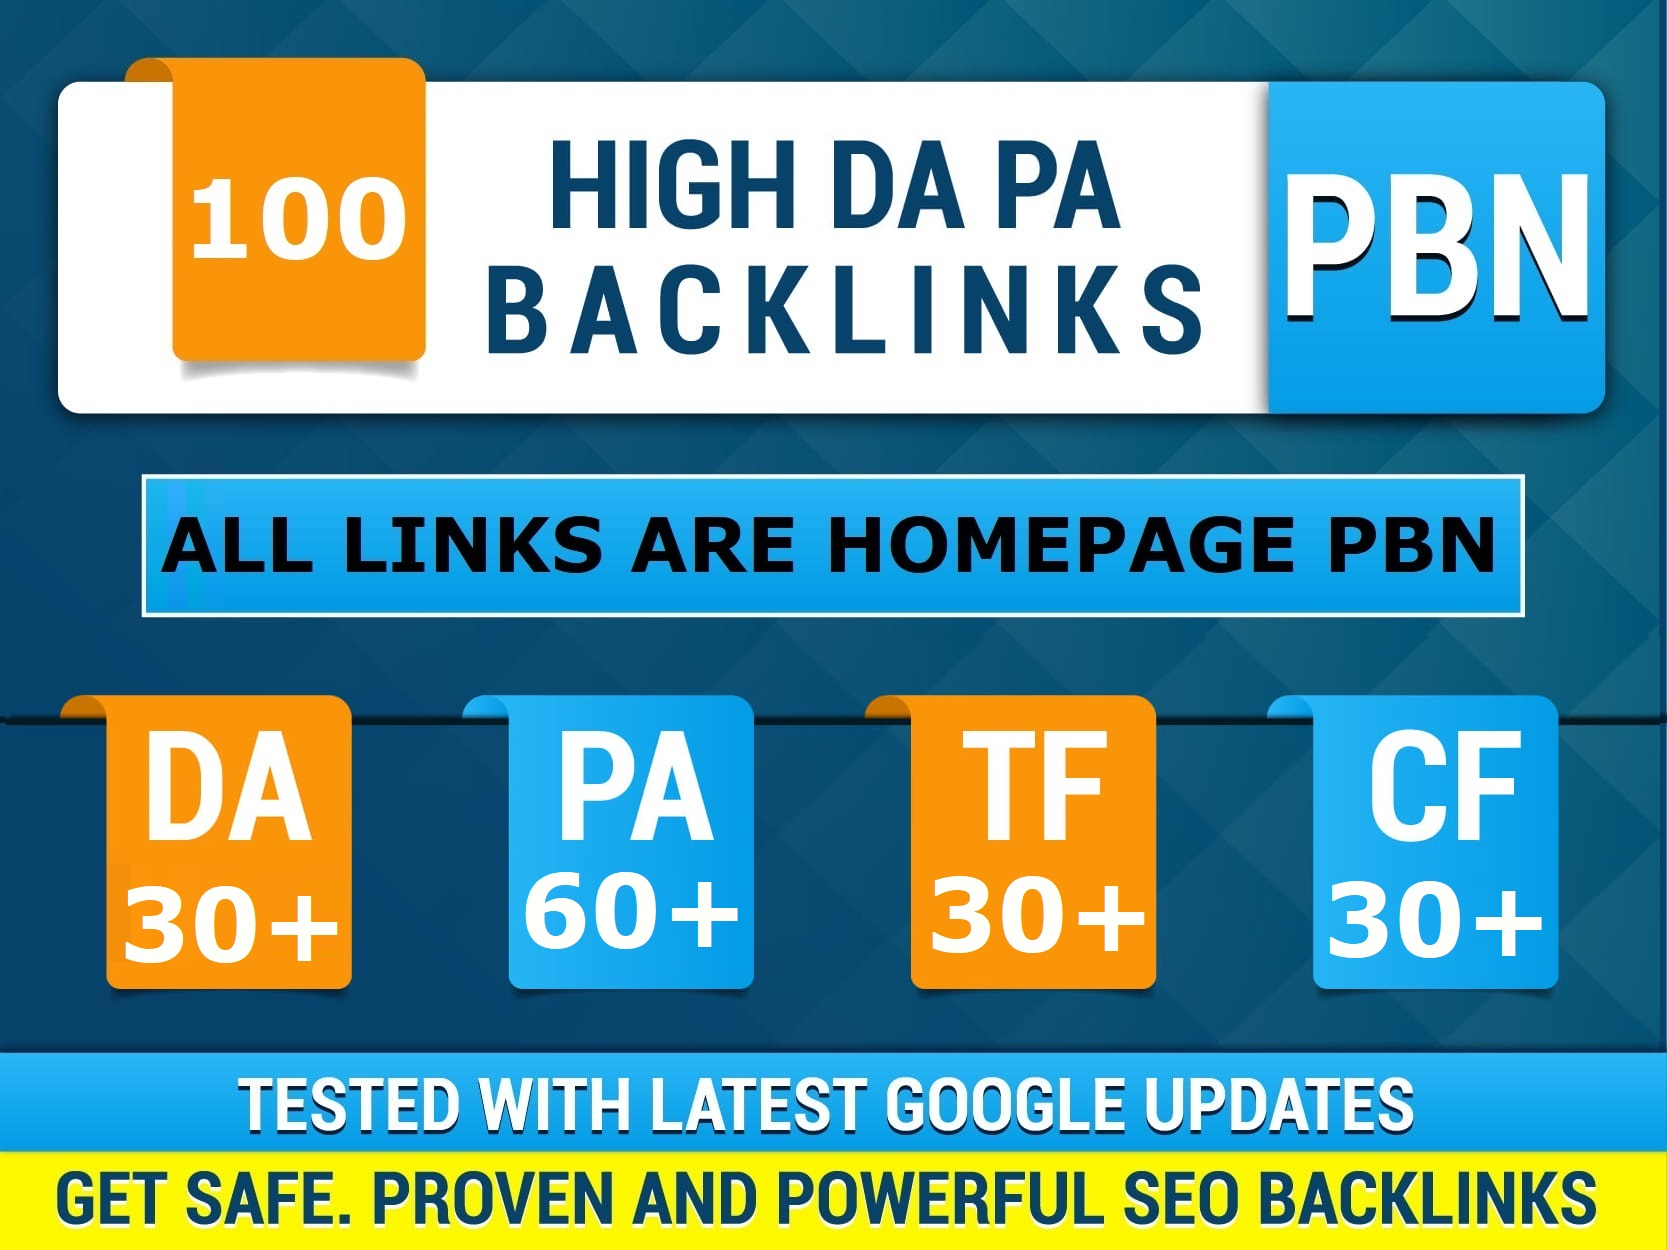 Build Upto 100 Permanent Pbn Links Of Tf 30 And Da 40 for google rank